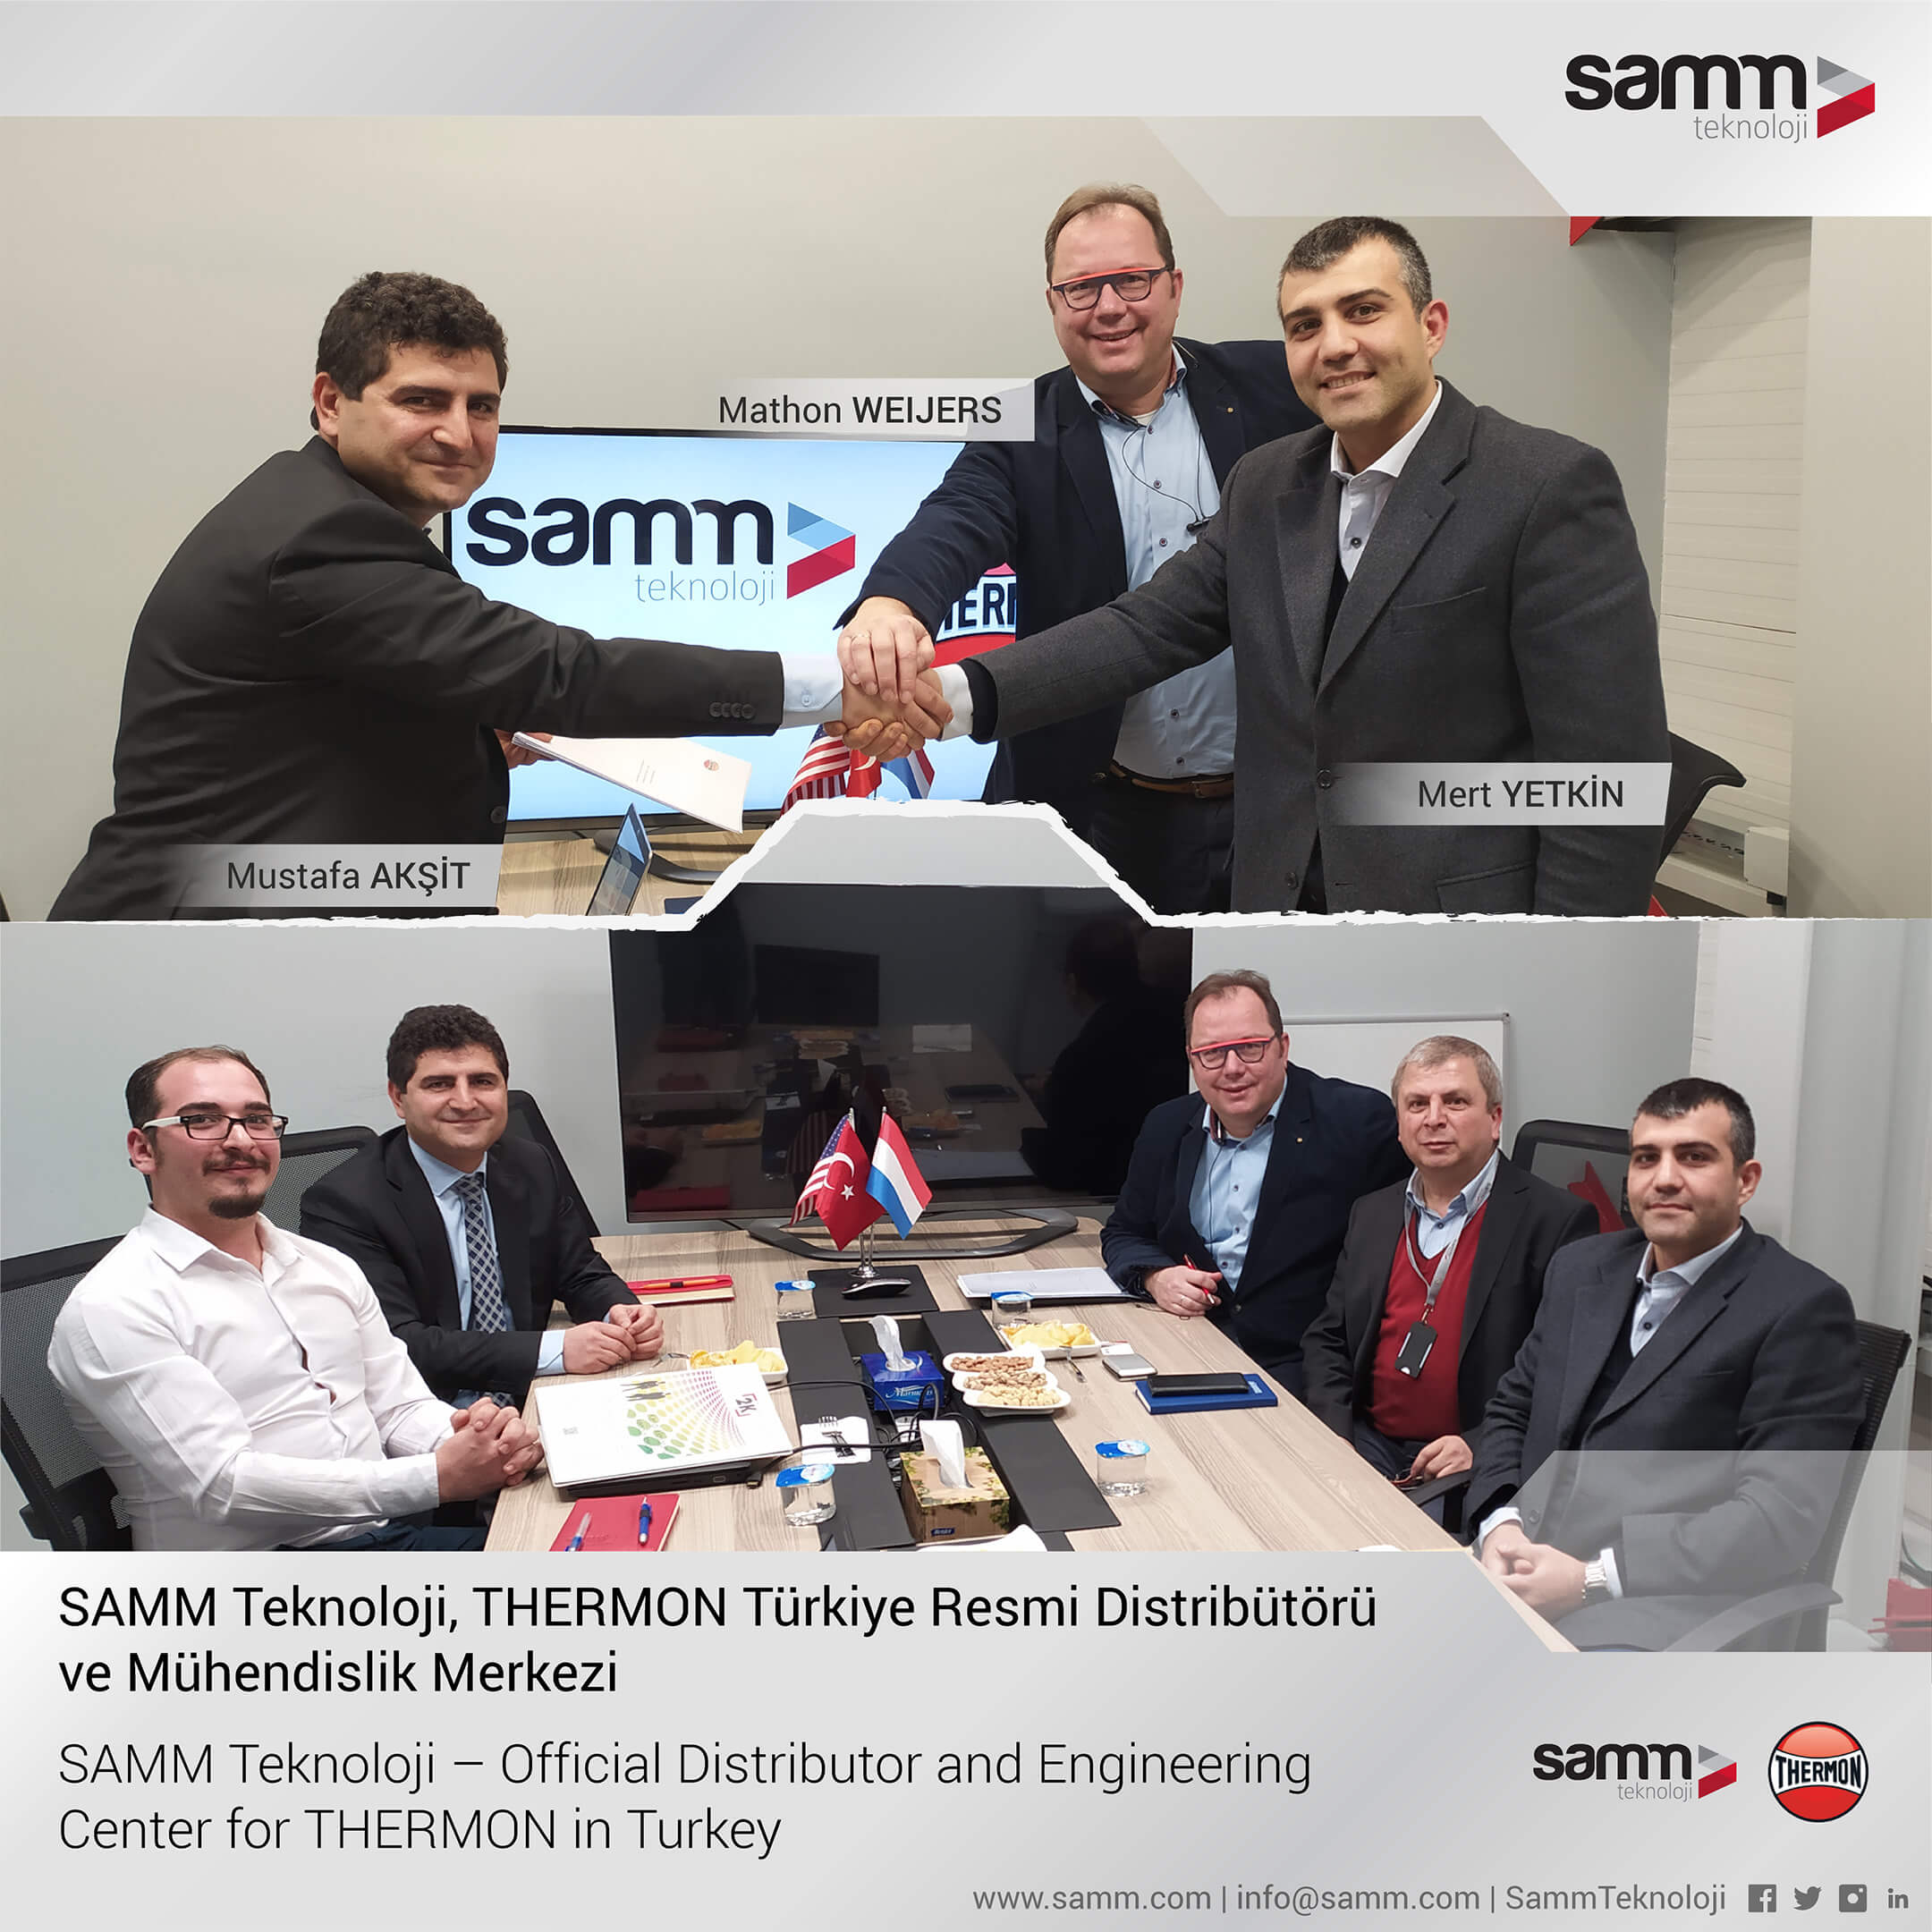 SAMM Teknoloji, The Official Distributor and Engineering Center for Thermon in Turkey 1